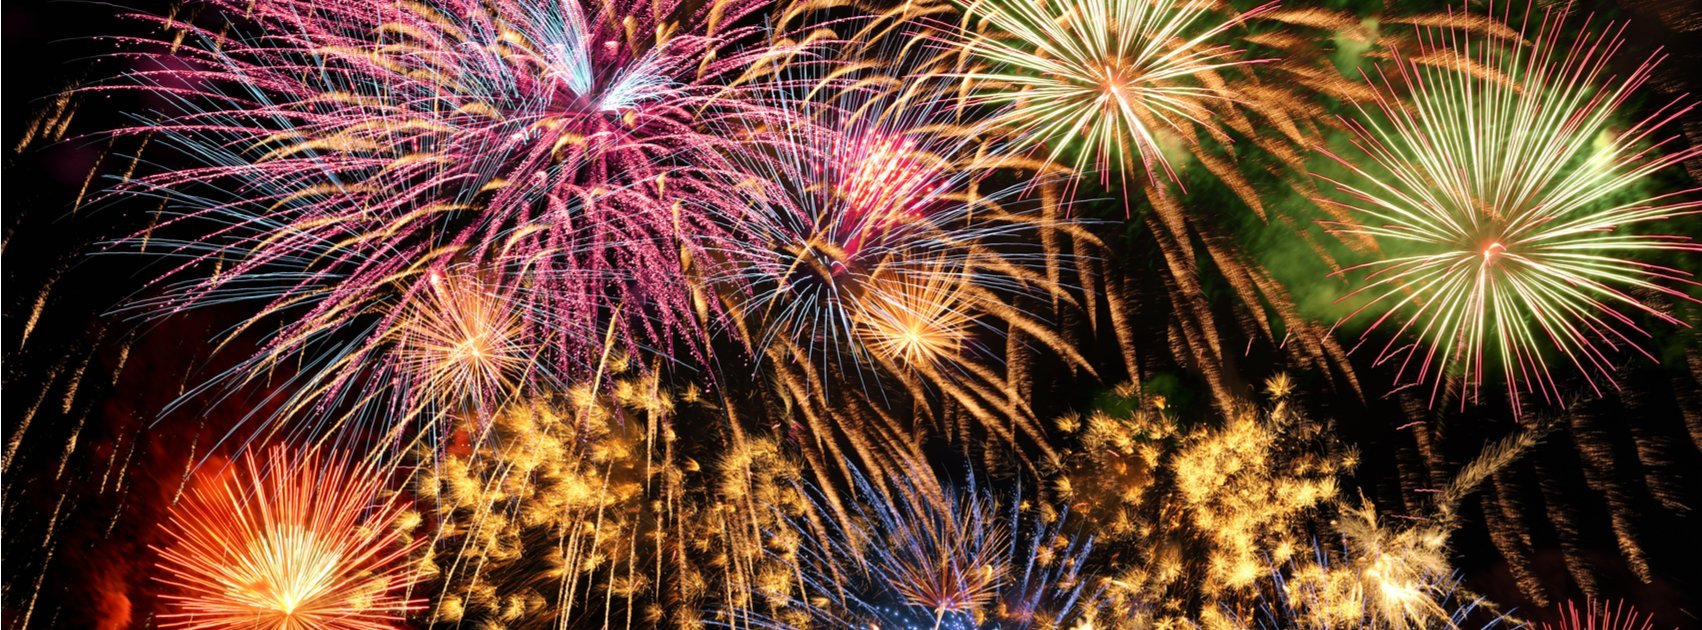 Fireworks and Your Pet: Preparing an Anxious Pet for 4th of July Celebrations